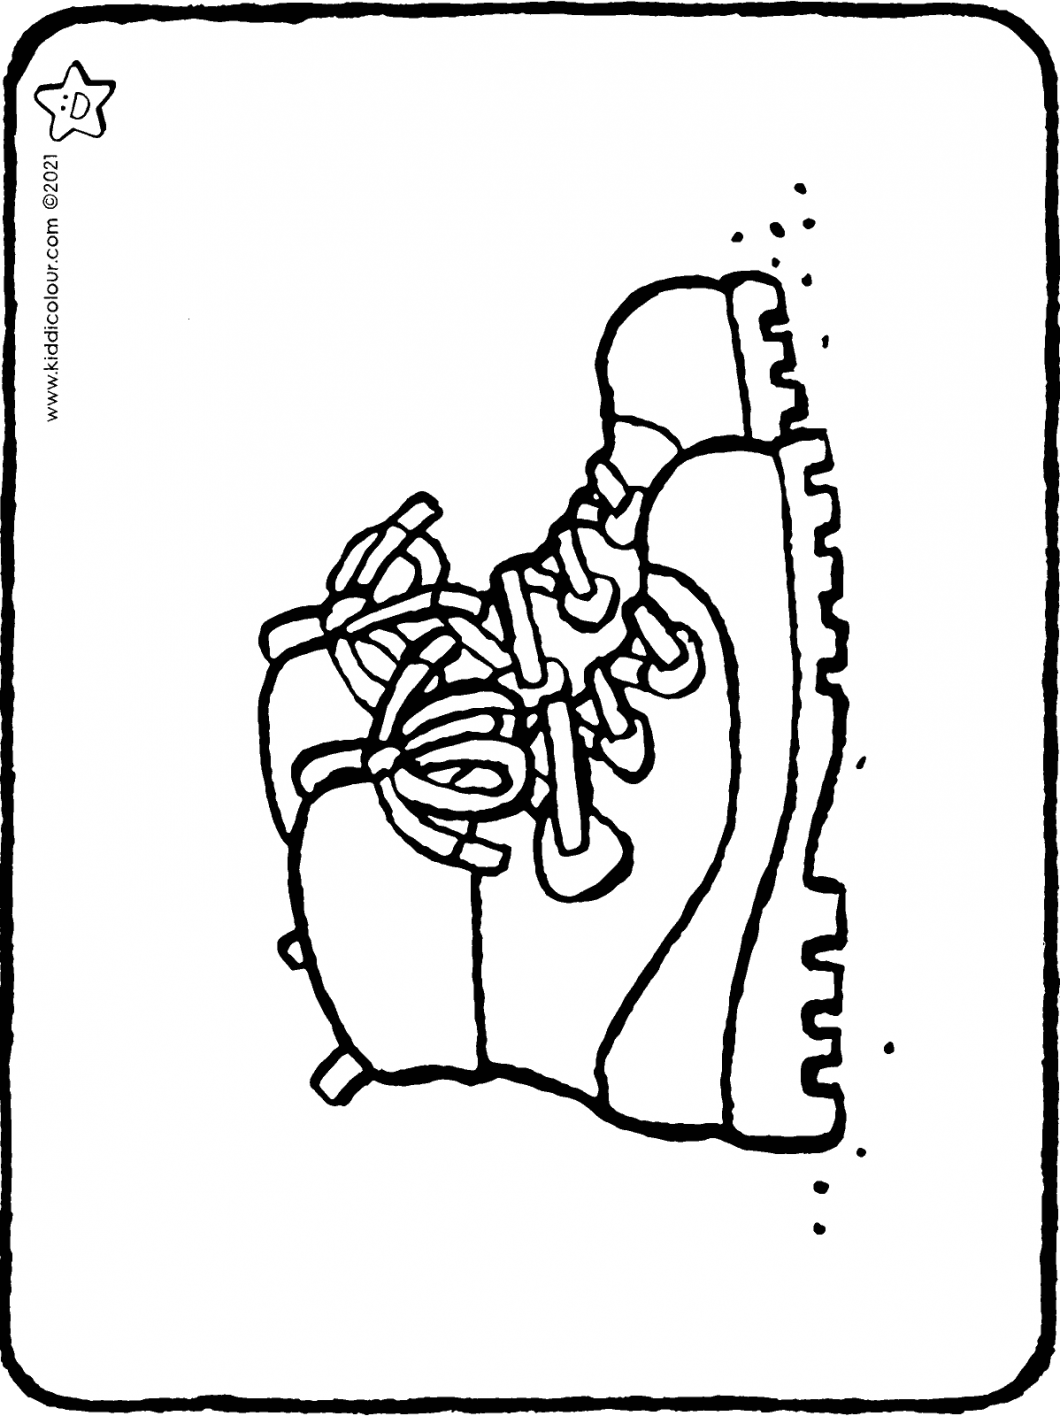 walking boots colouring page drawing picture 01H